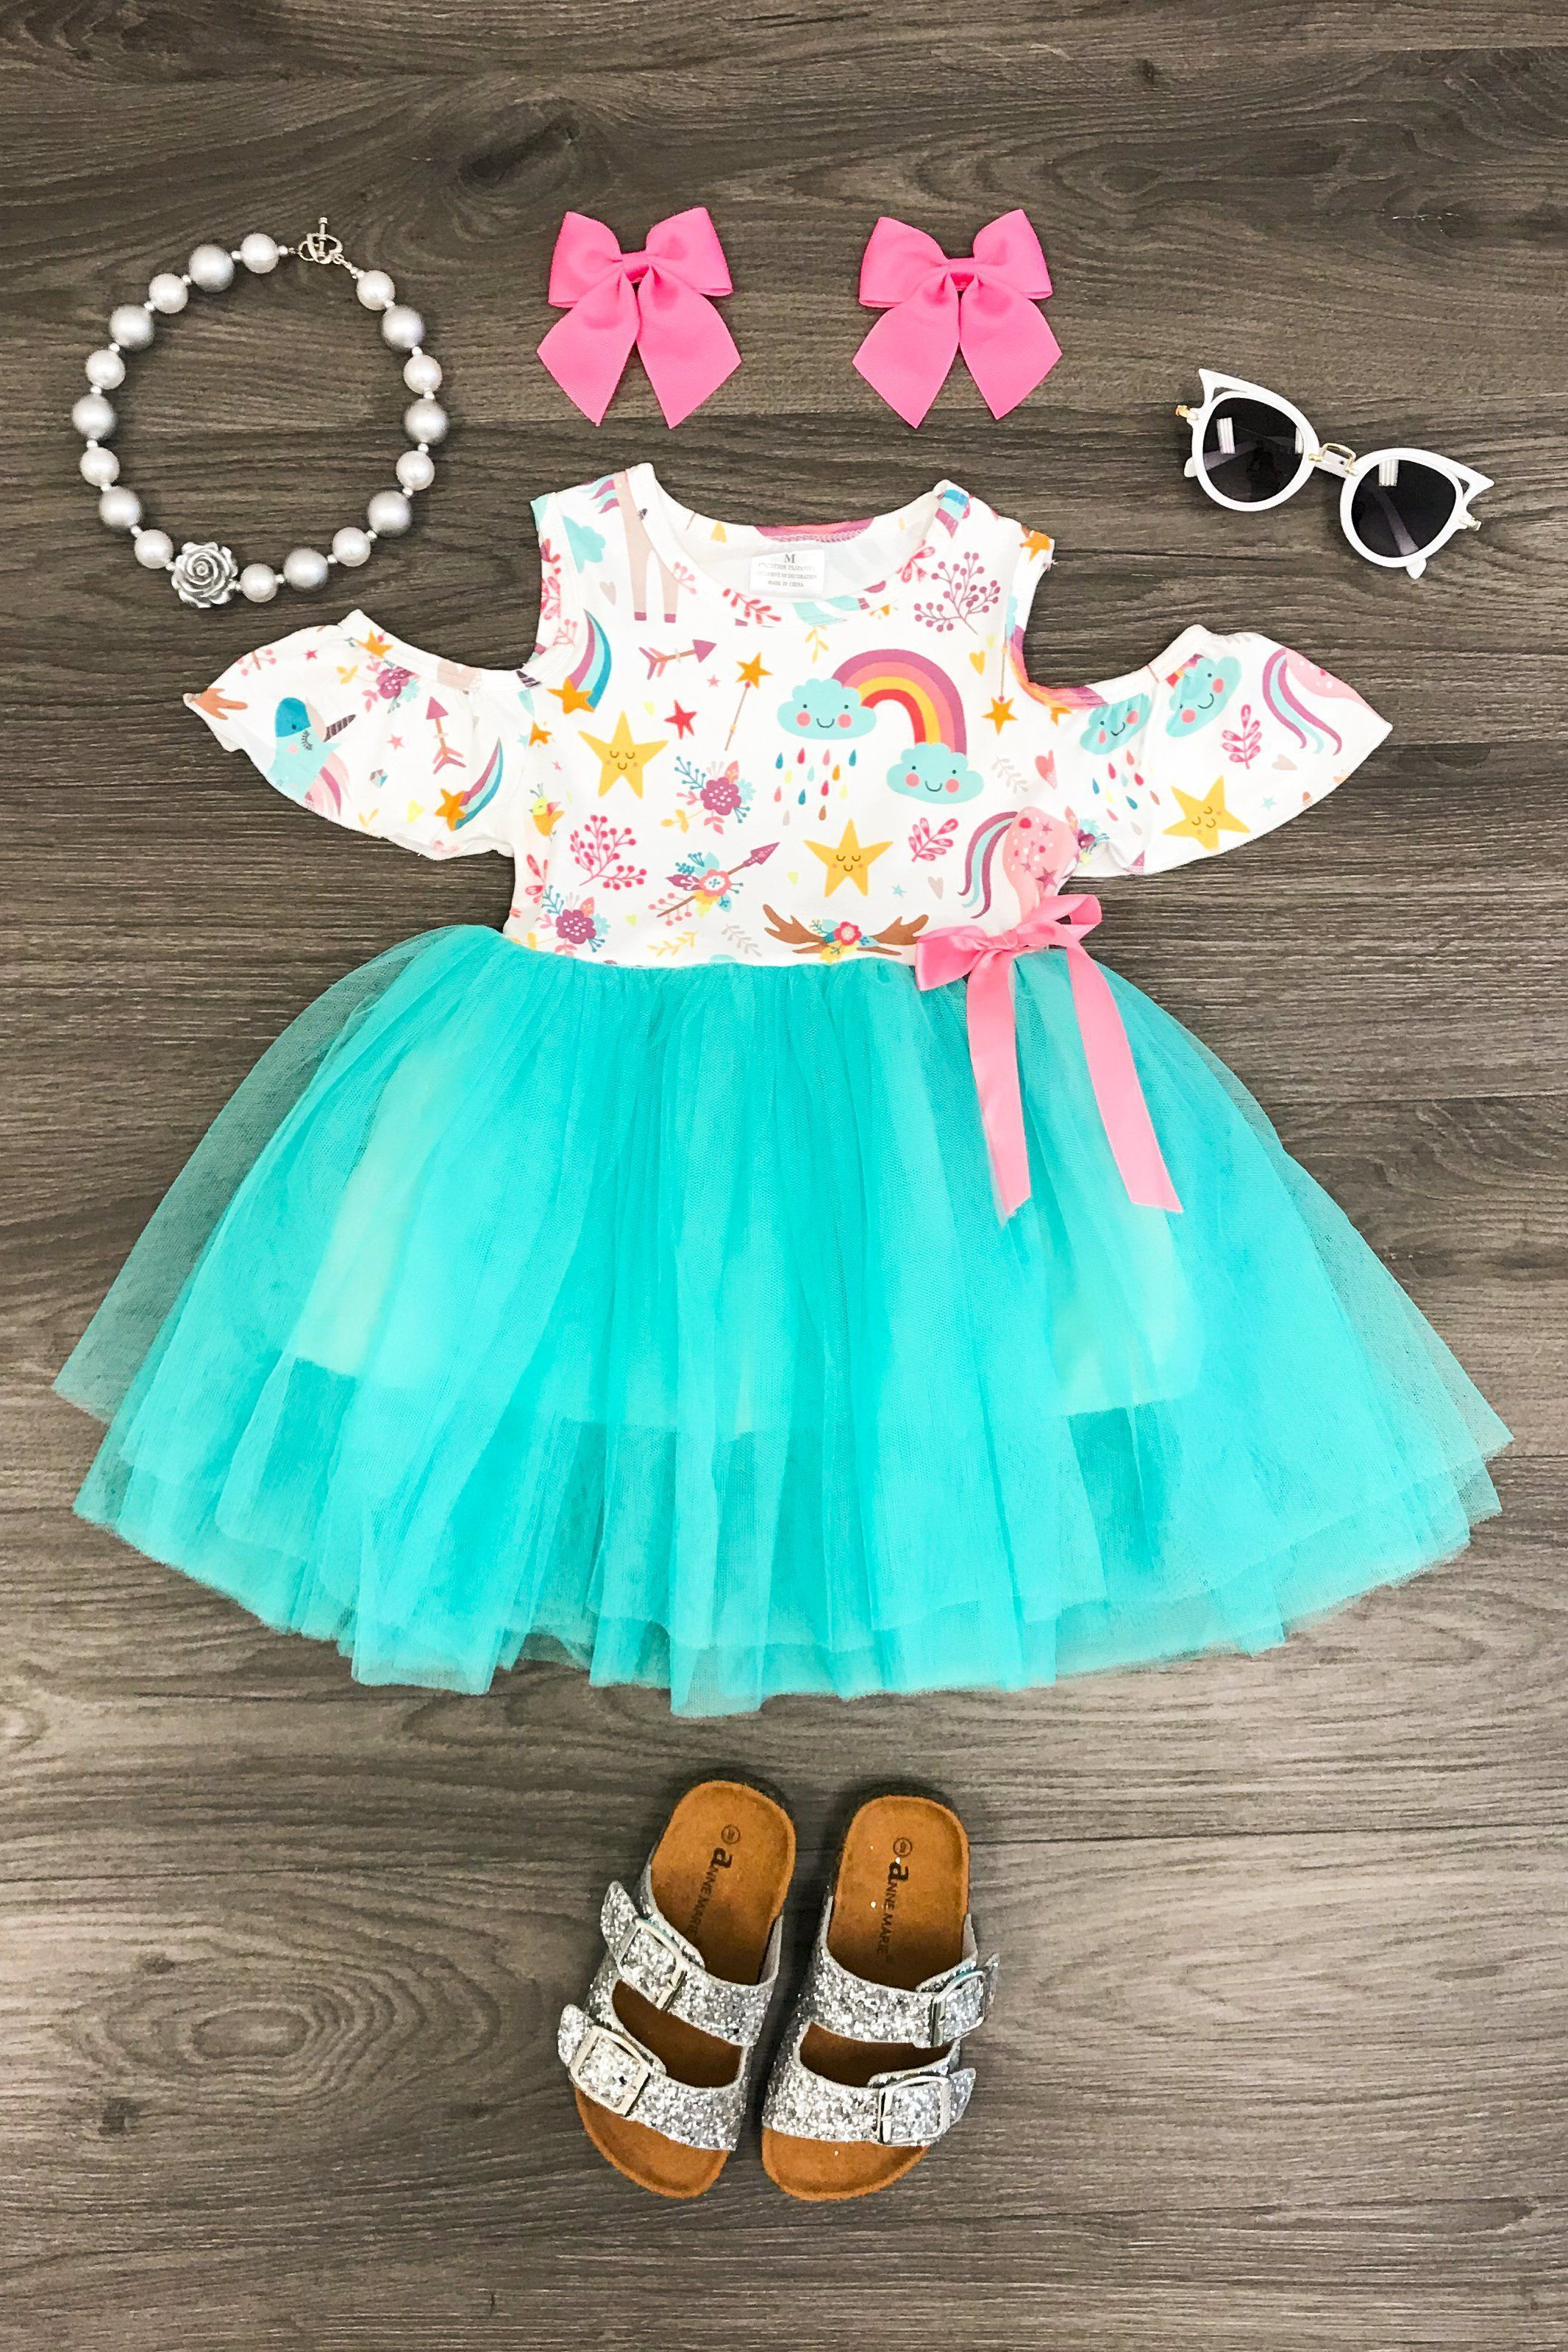 88cb969a94 Mint Unicorn Cold Shoulder Tutu Dress - Unicorn Dress - Baby Girl Sundress  - Toddler Girl Special Occasion Outfit - Unicorn Birthday - Party Dress ...